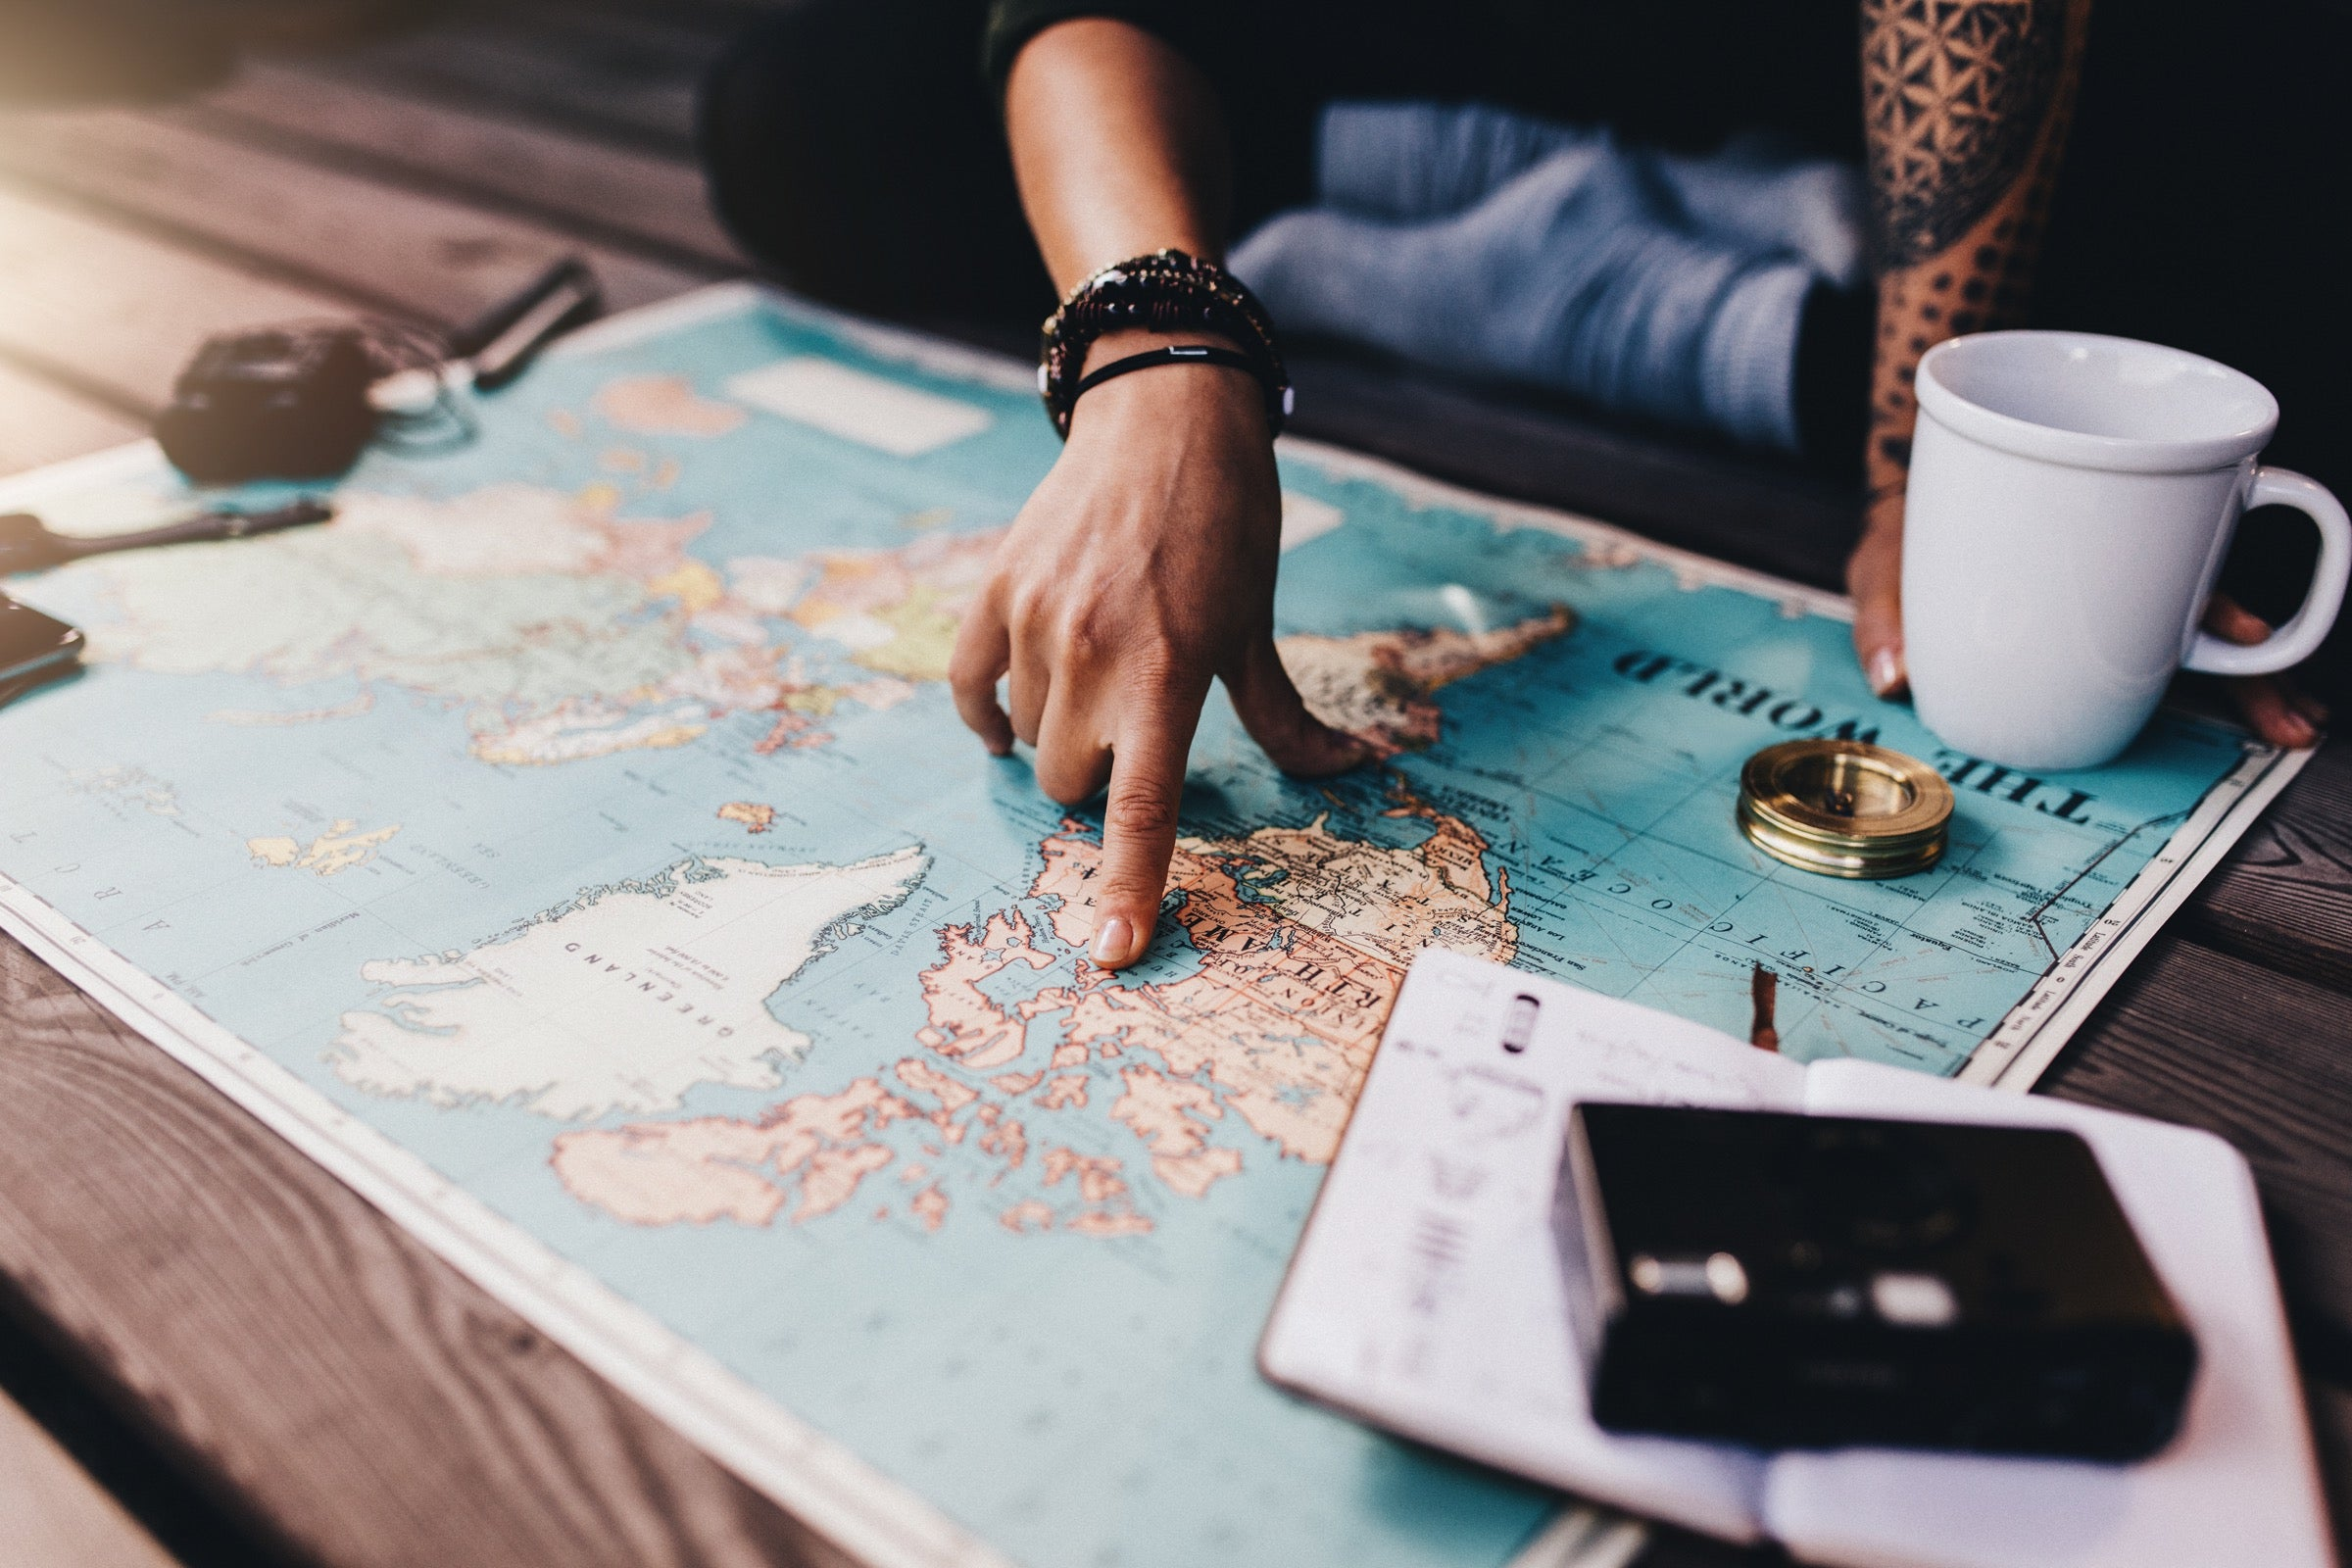 You can book an around-the-world award ticket for just 75,000 miles — here's how - The Points Guy